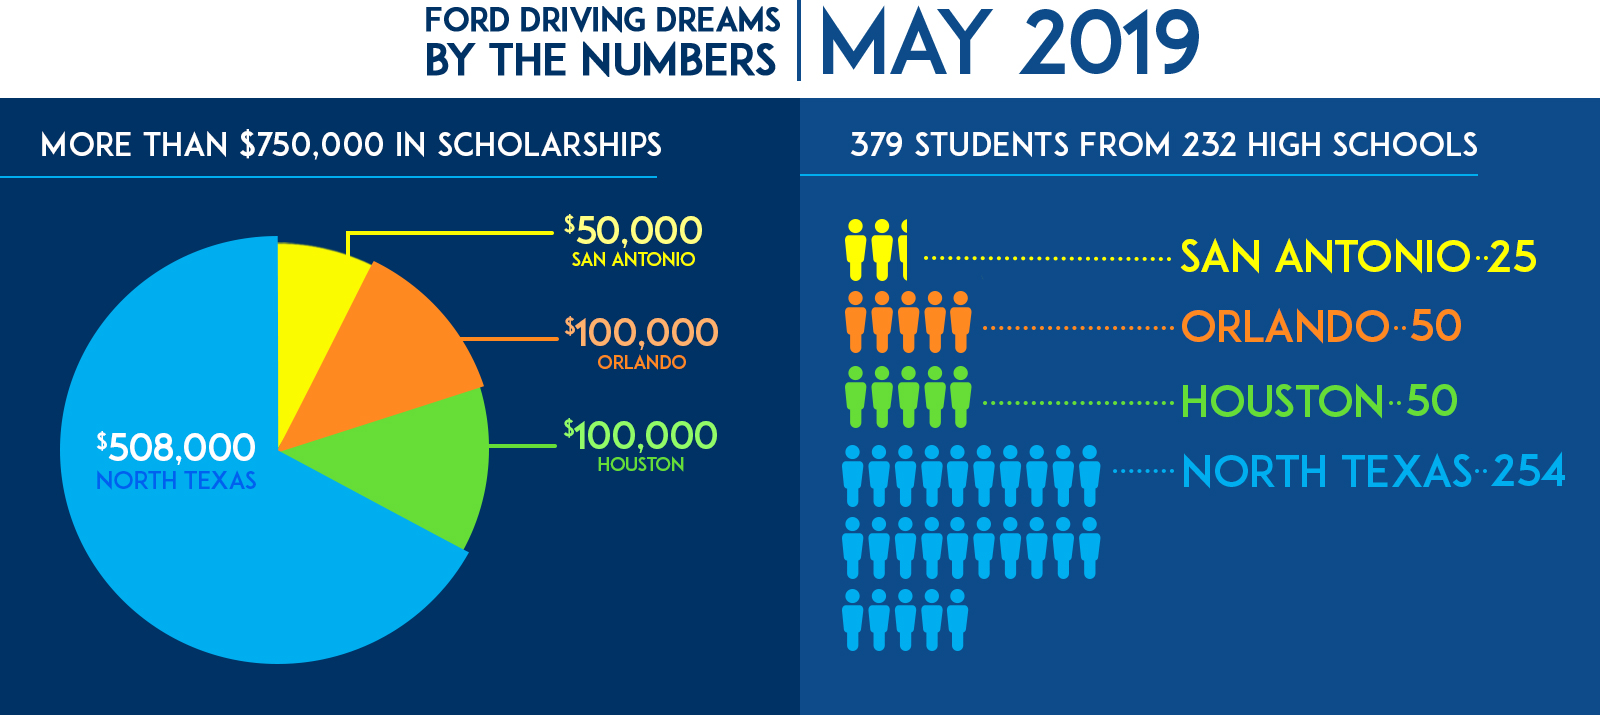 Graphic of FDD scholarships and students